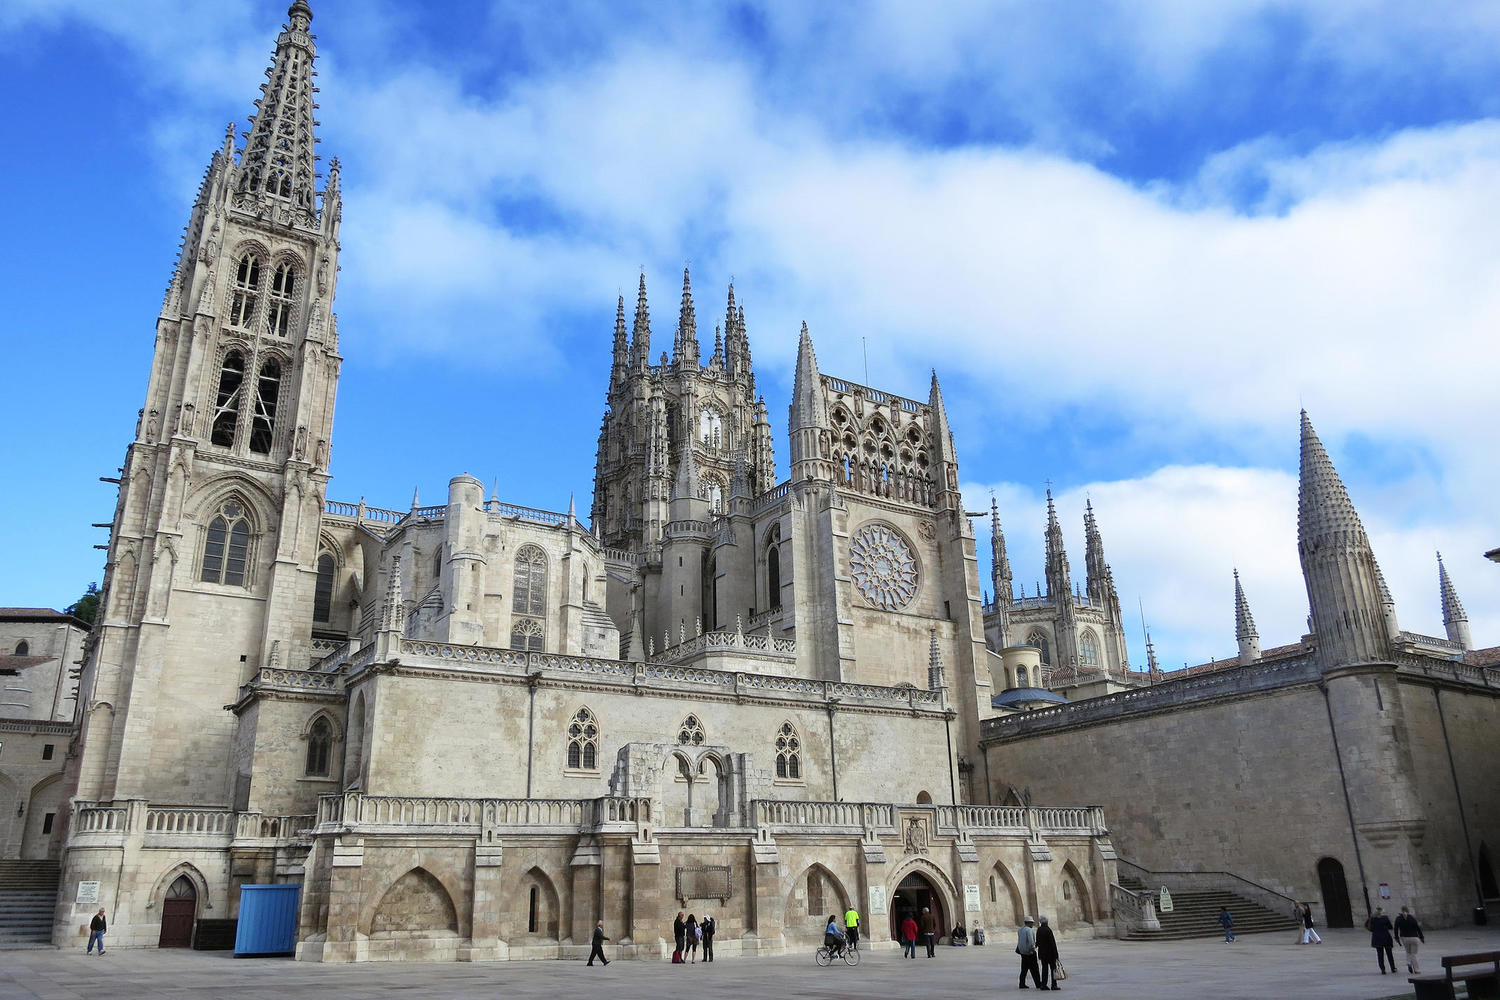 The impressive cathedral of Burgos